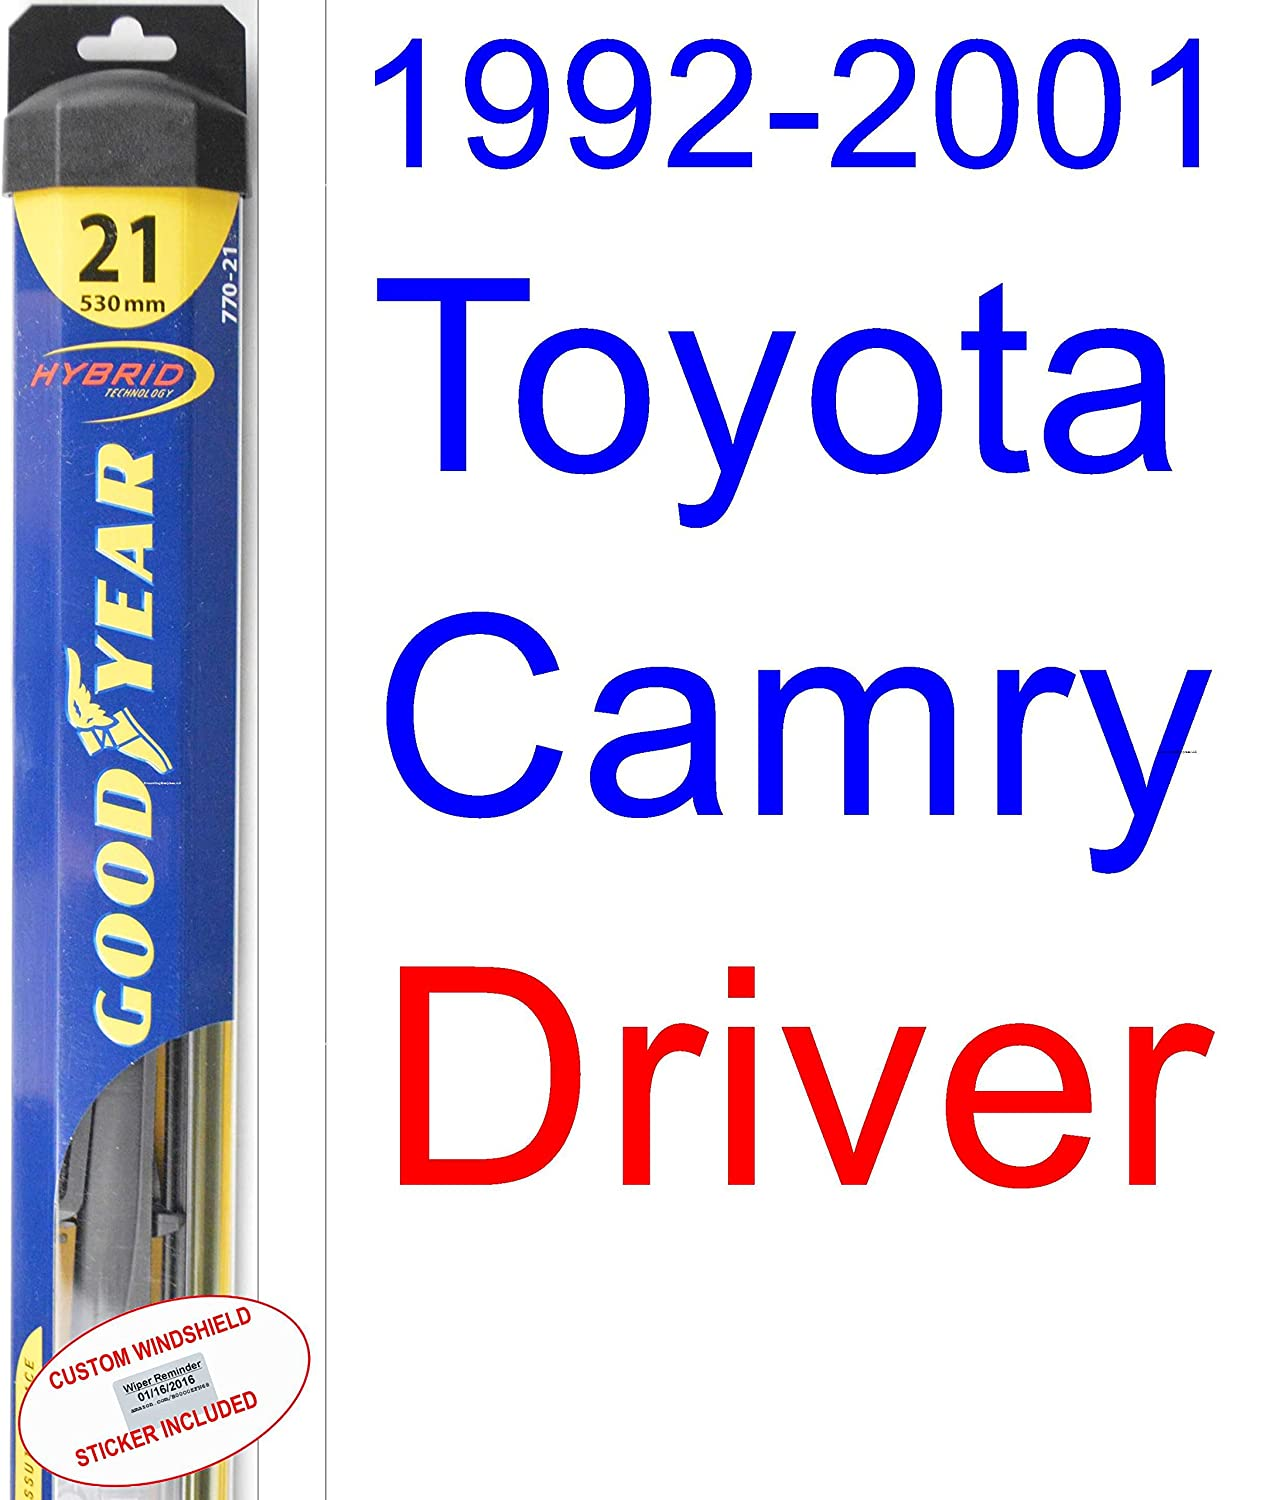 Amazon.com: 1992-2001 Toyota Camry Wiper Blade (Driver) (Goodyear Wiper Blades-Hybrid) (1993,1994,1995,1996,1997,1998,1999,2000): Automotive